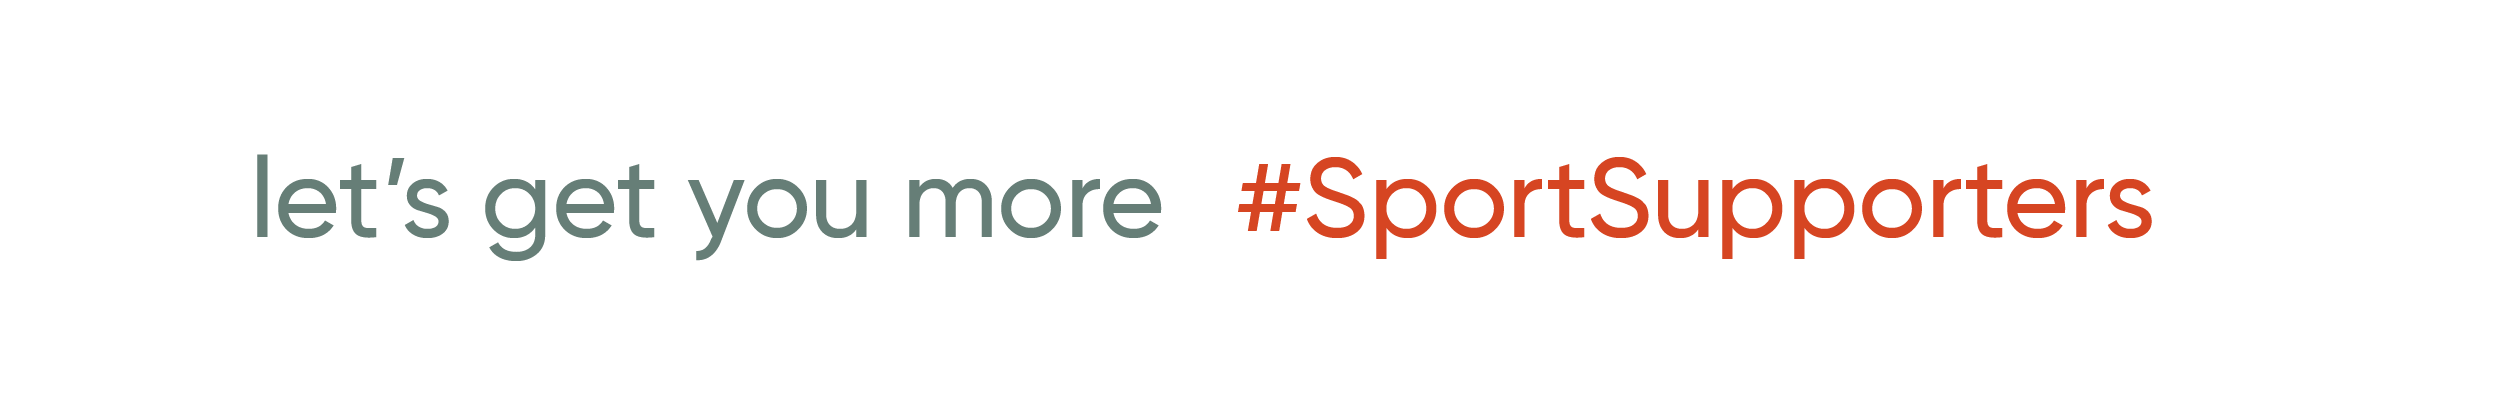 get-sportsupport-01.png